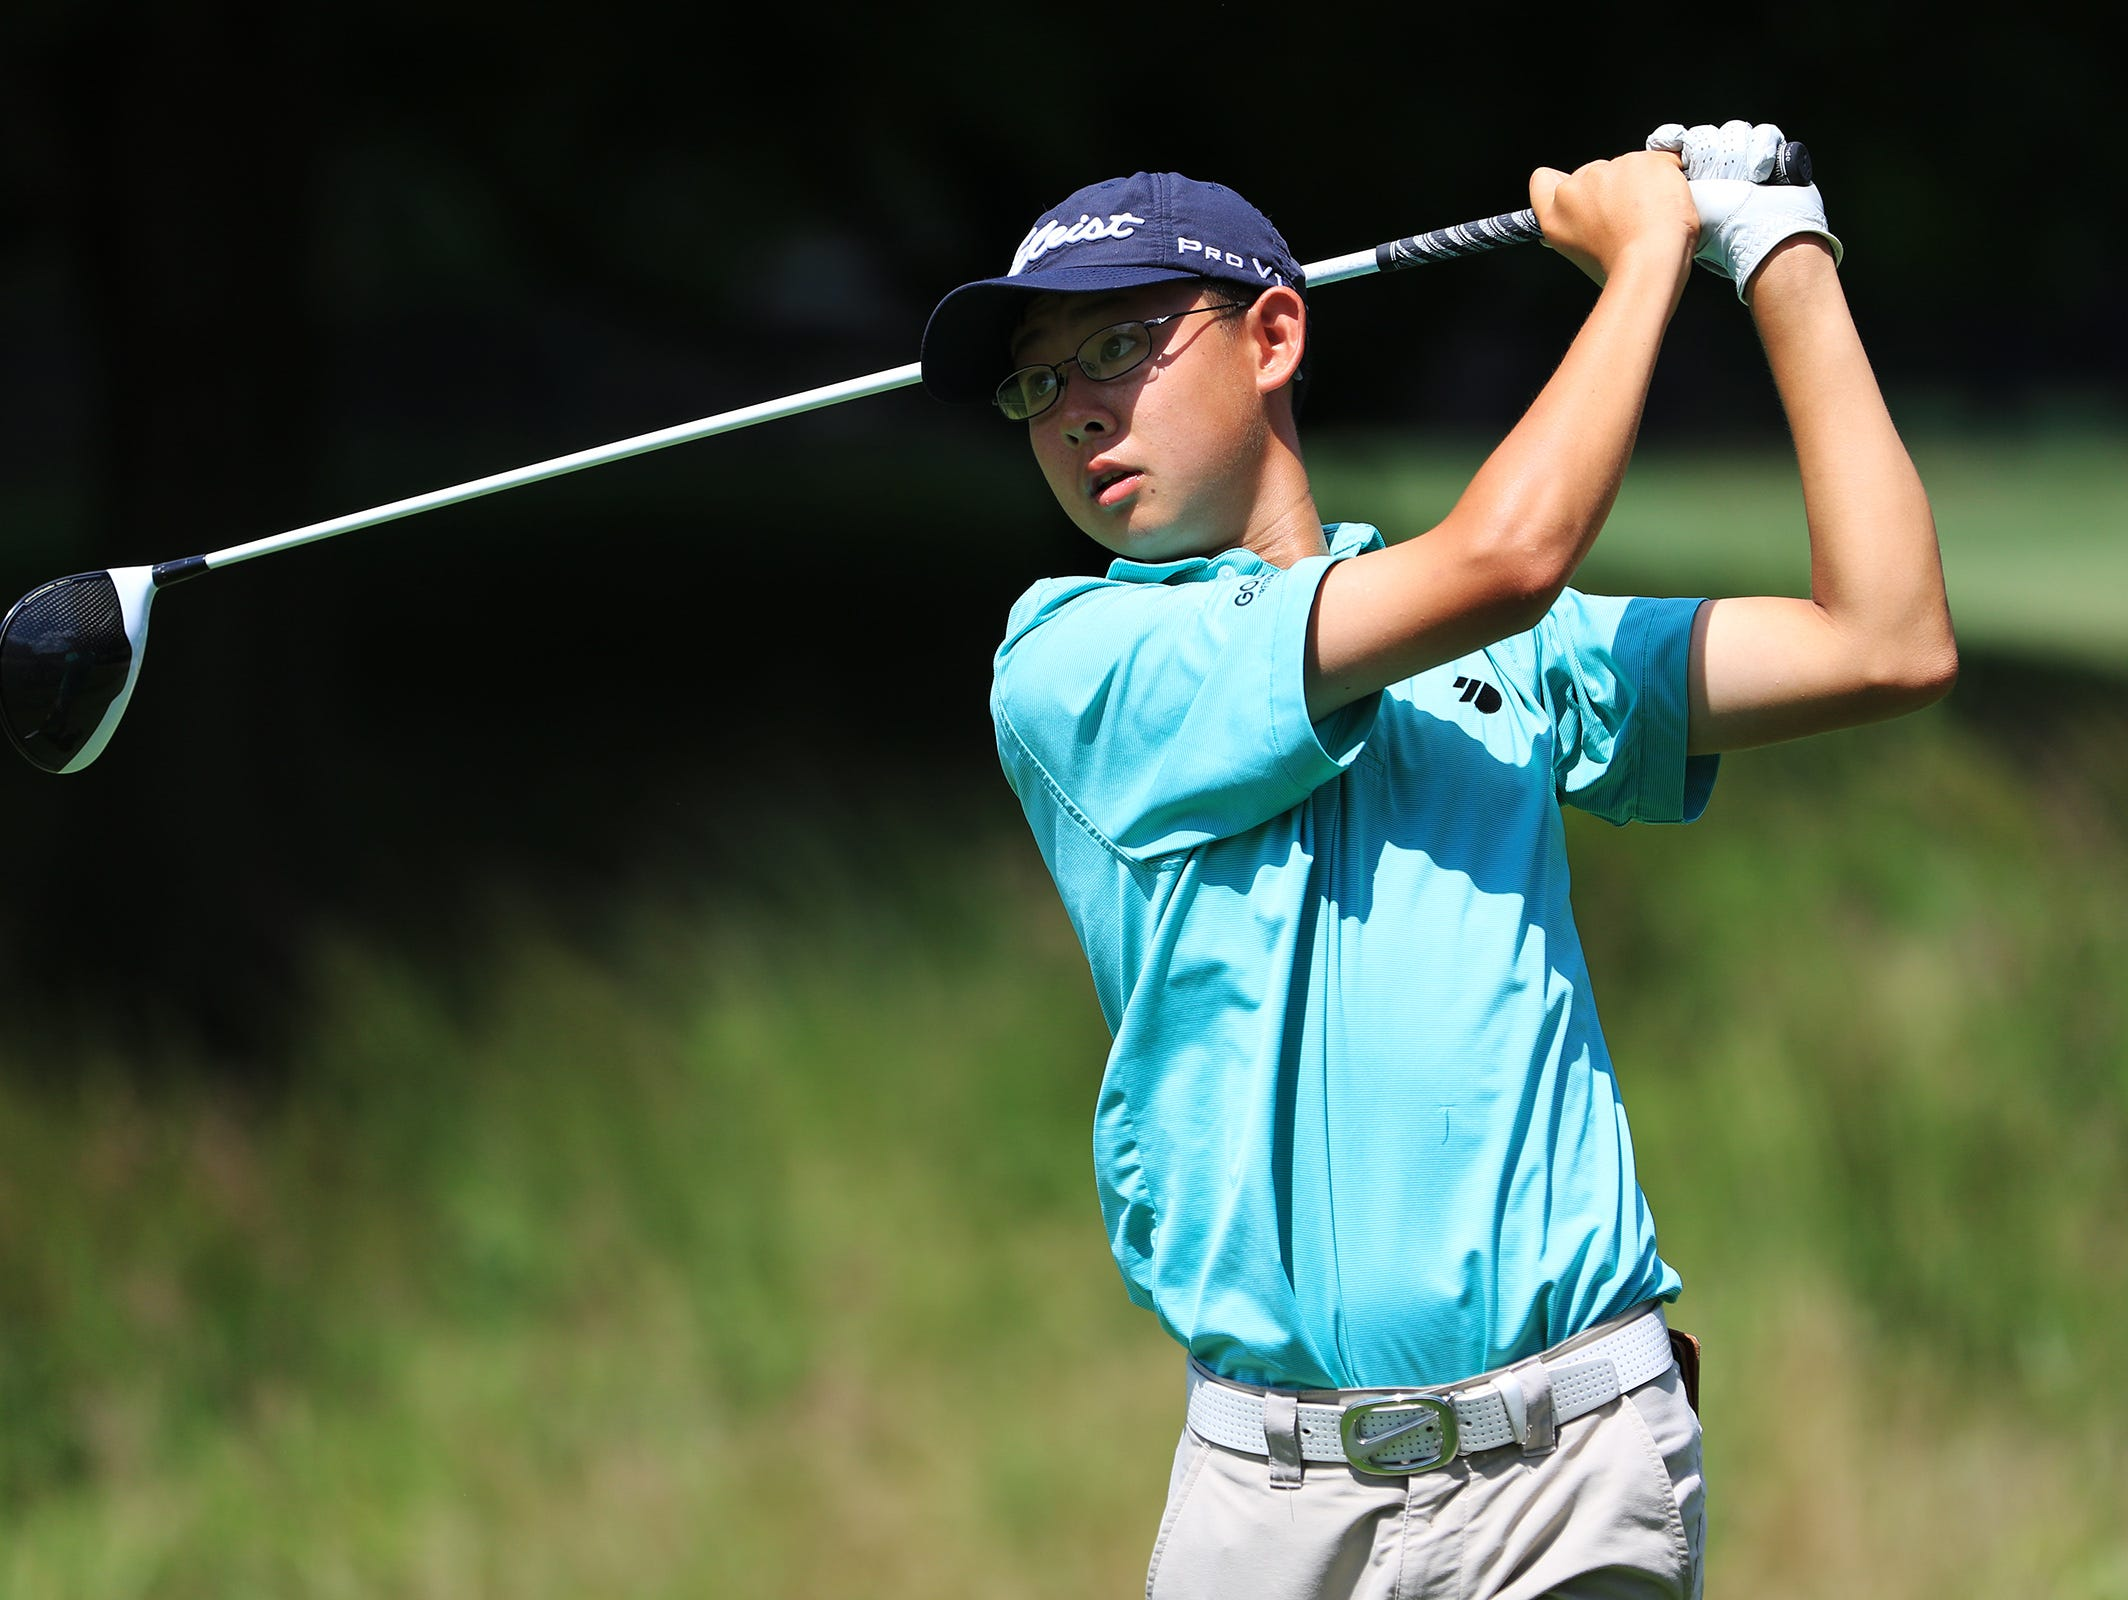 Nathan Han posted a 2-and-1 win over Stephen Sul on Friday in the finale.